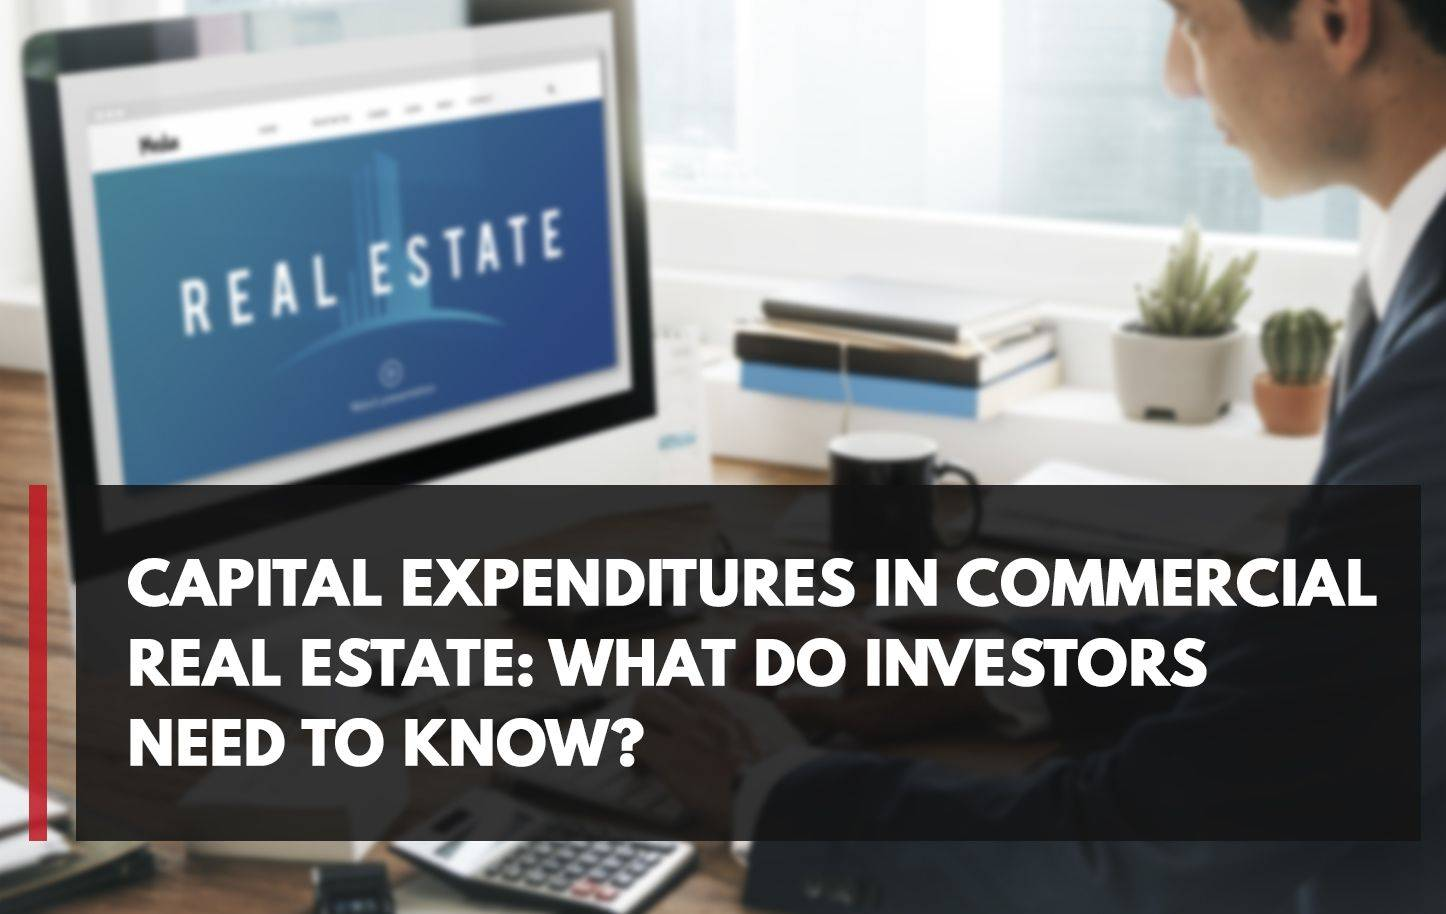 Capital Expenditures in Commercial Real Estate: What Do Investors Need to Know?